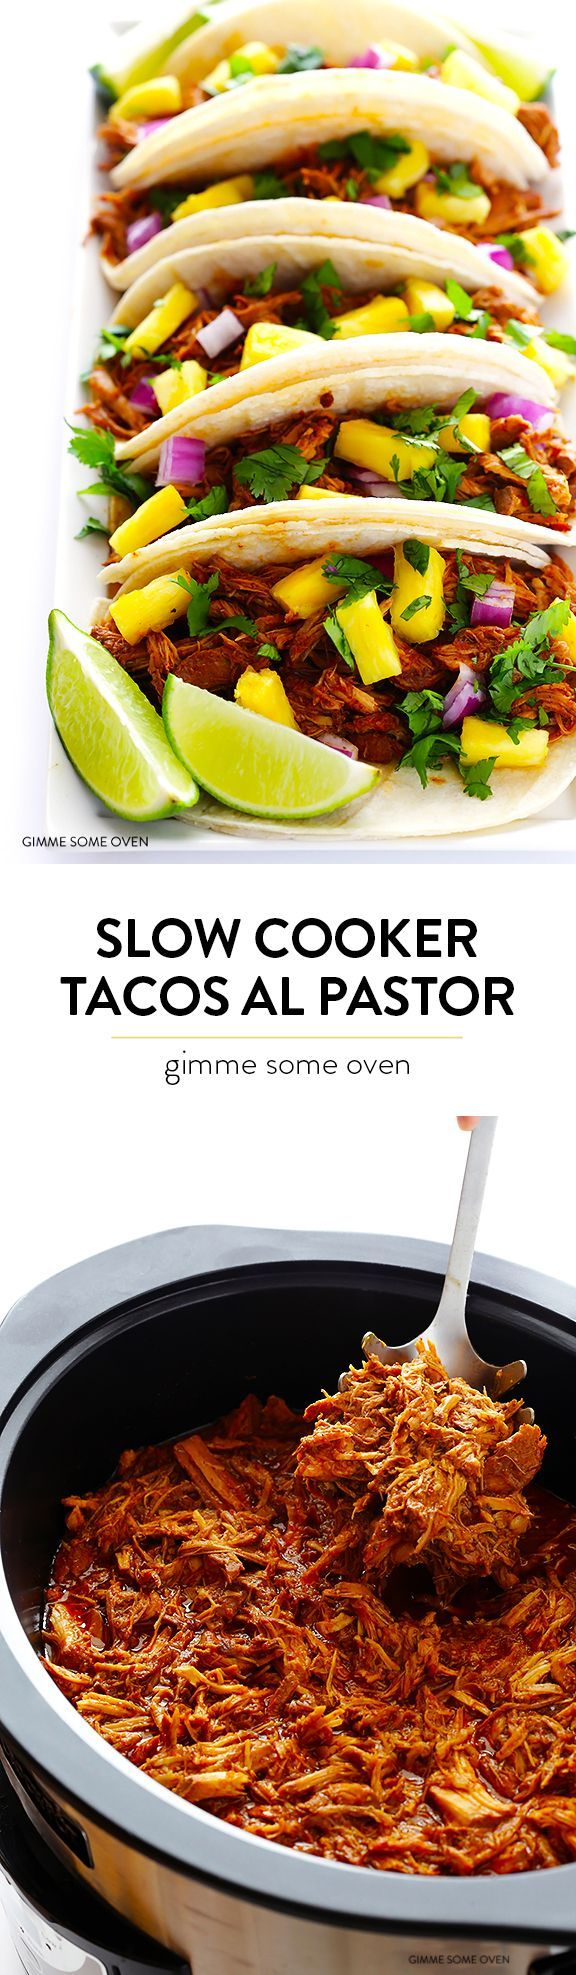 ideas about Crock Pot Tacos Crock Pot, Tacos